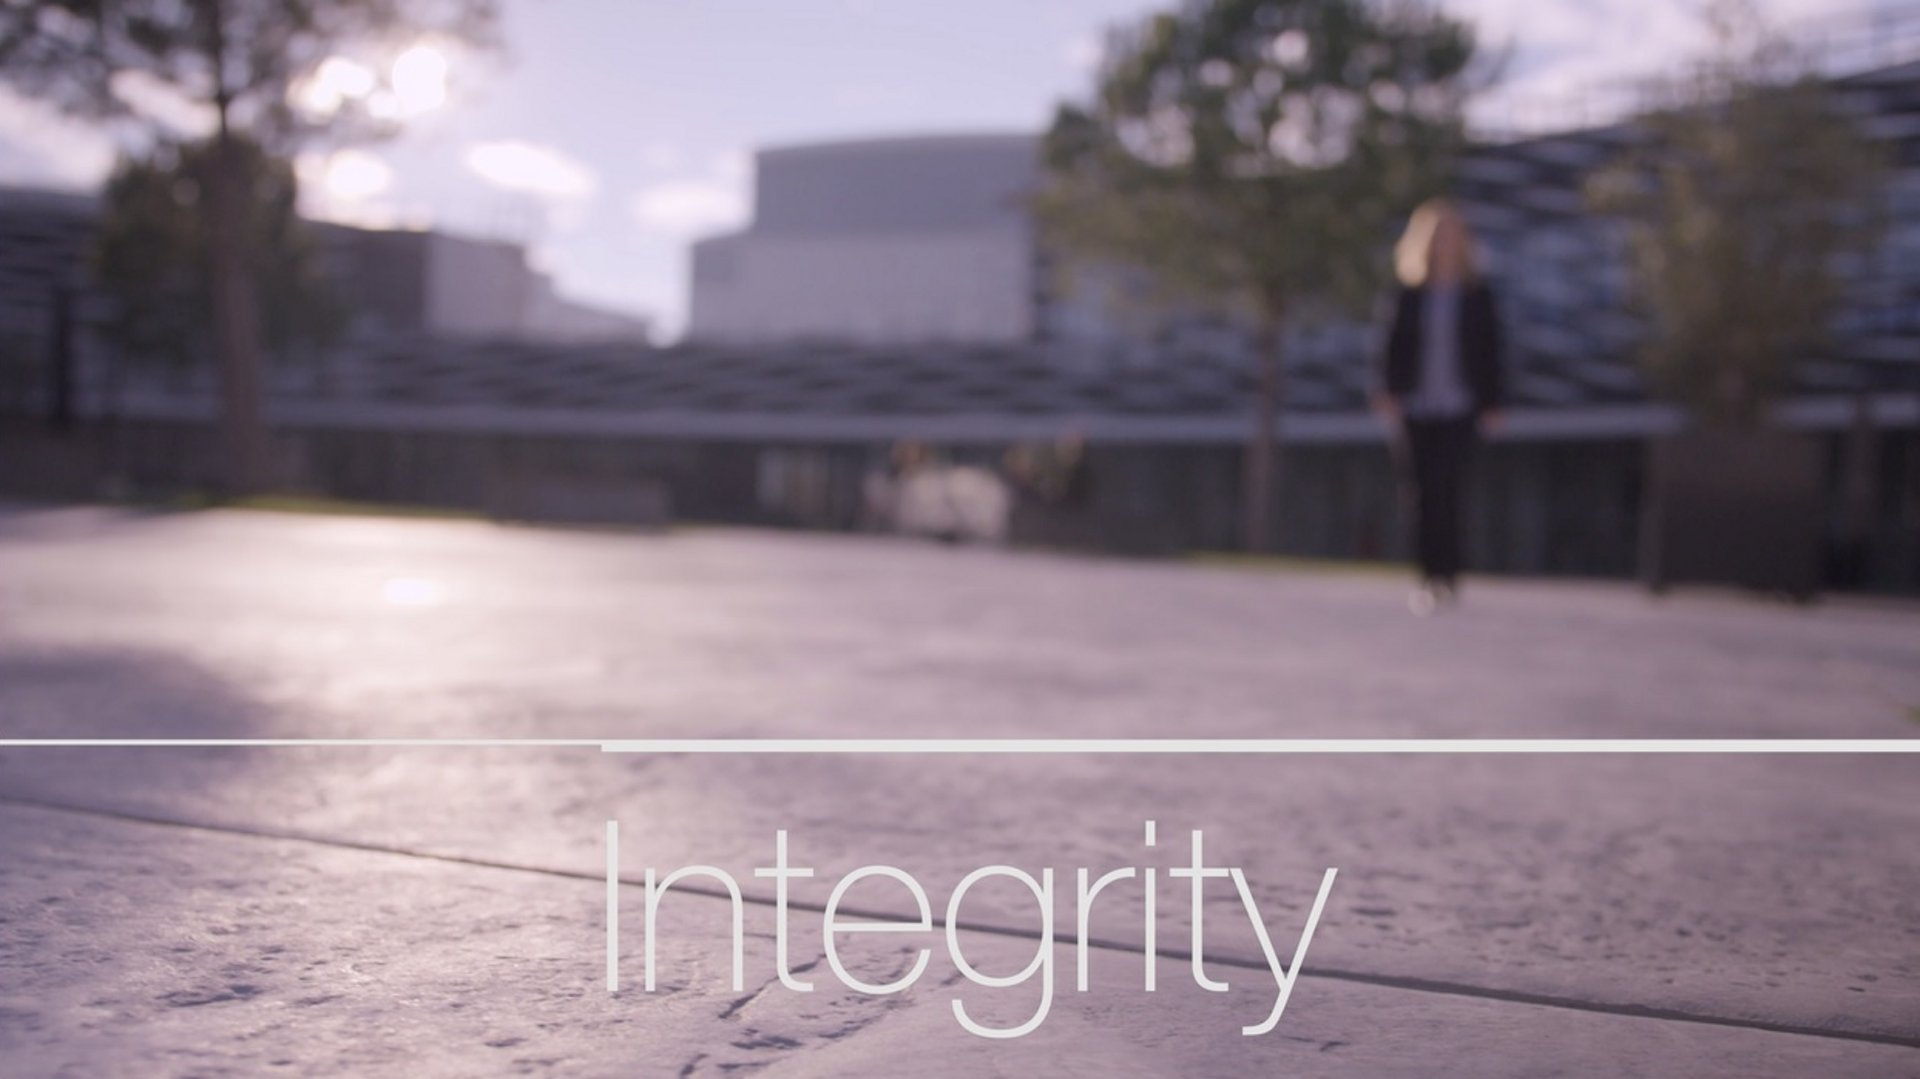 Values - Integrity